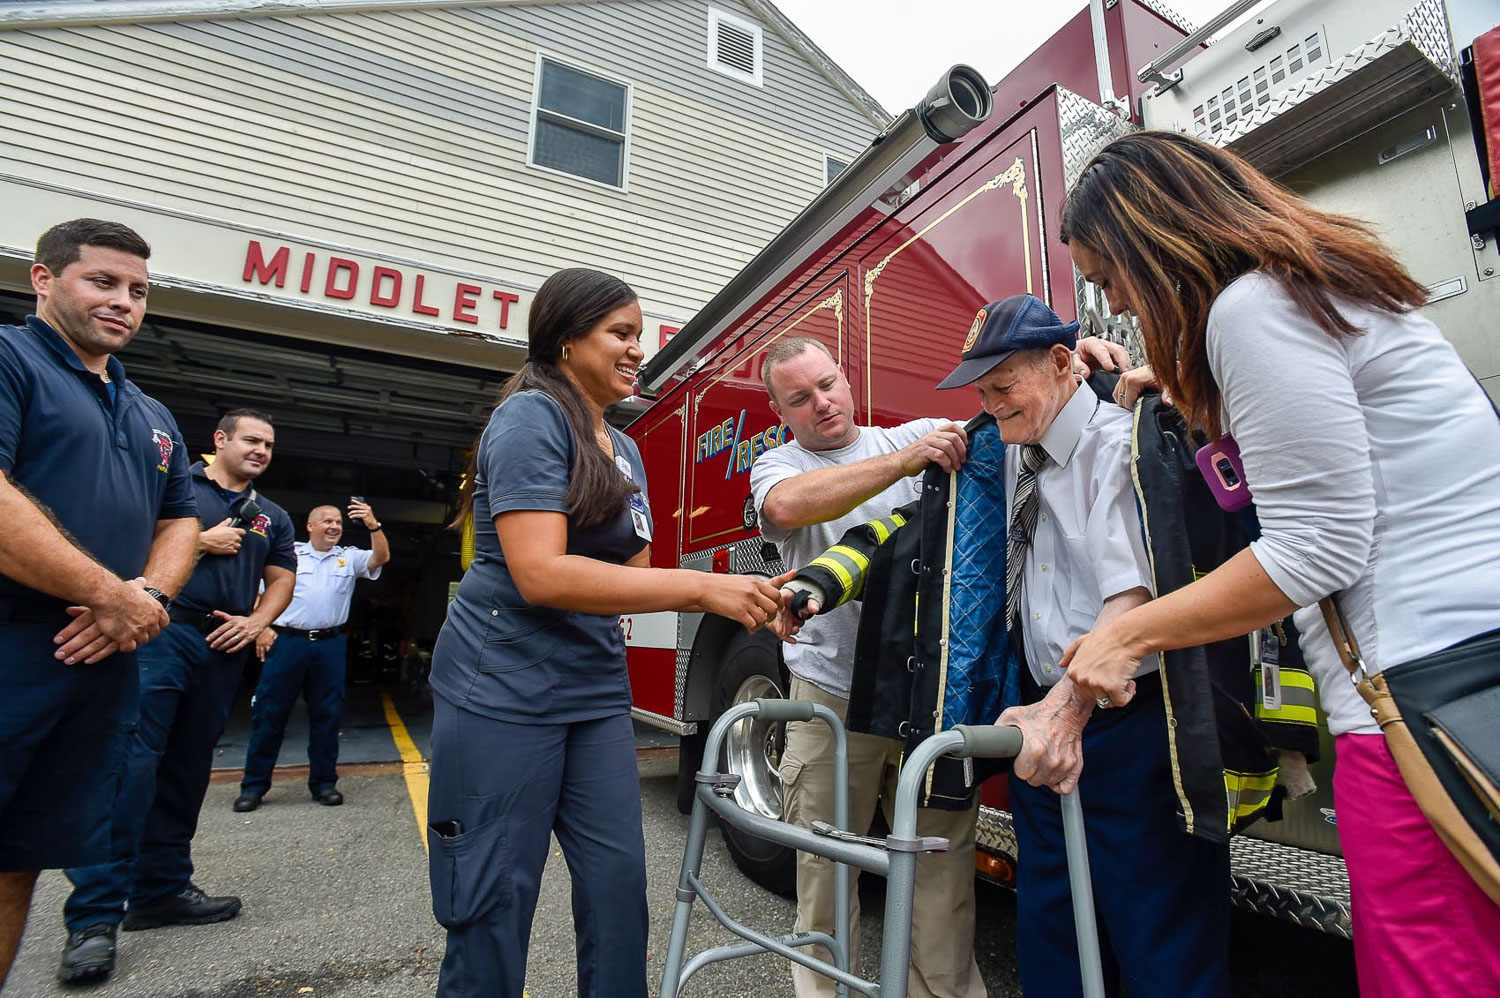 5 of 9 Honorary Middleton firefighter Bobby Jensen, center, receives help putting on a firefighters jacket from Lismery Ortiz, Hospice Aide at Compassus, Captain Doug LeColst, and Maureen Brancato, Hospice Nurse at Compassus, during his visit to the Middleton Fire Department, Thursday, Sept. 14, 2017. [Wicked Local Photo / David Sokol]